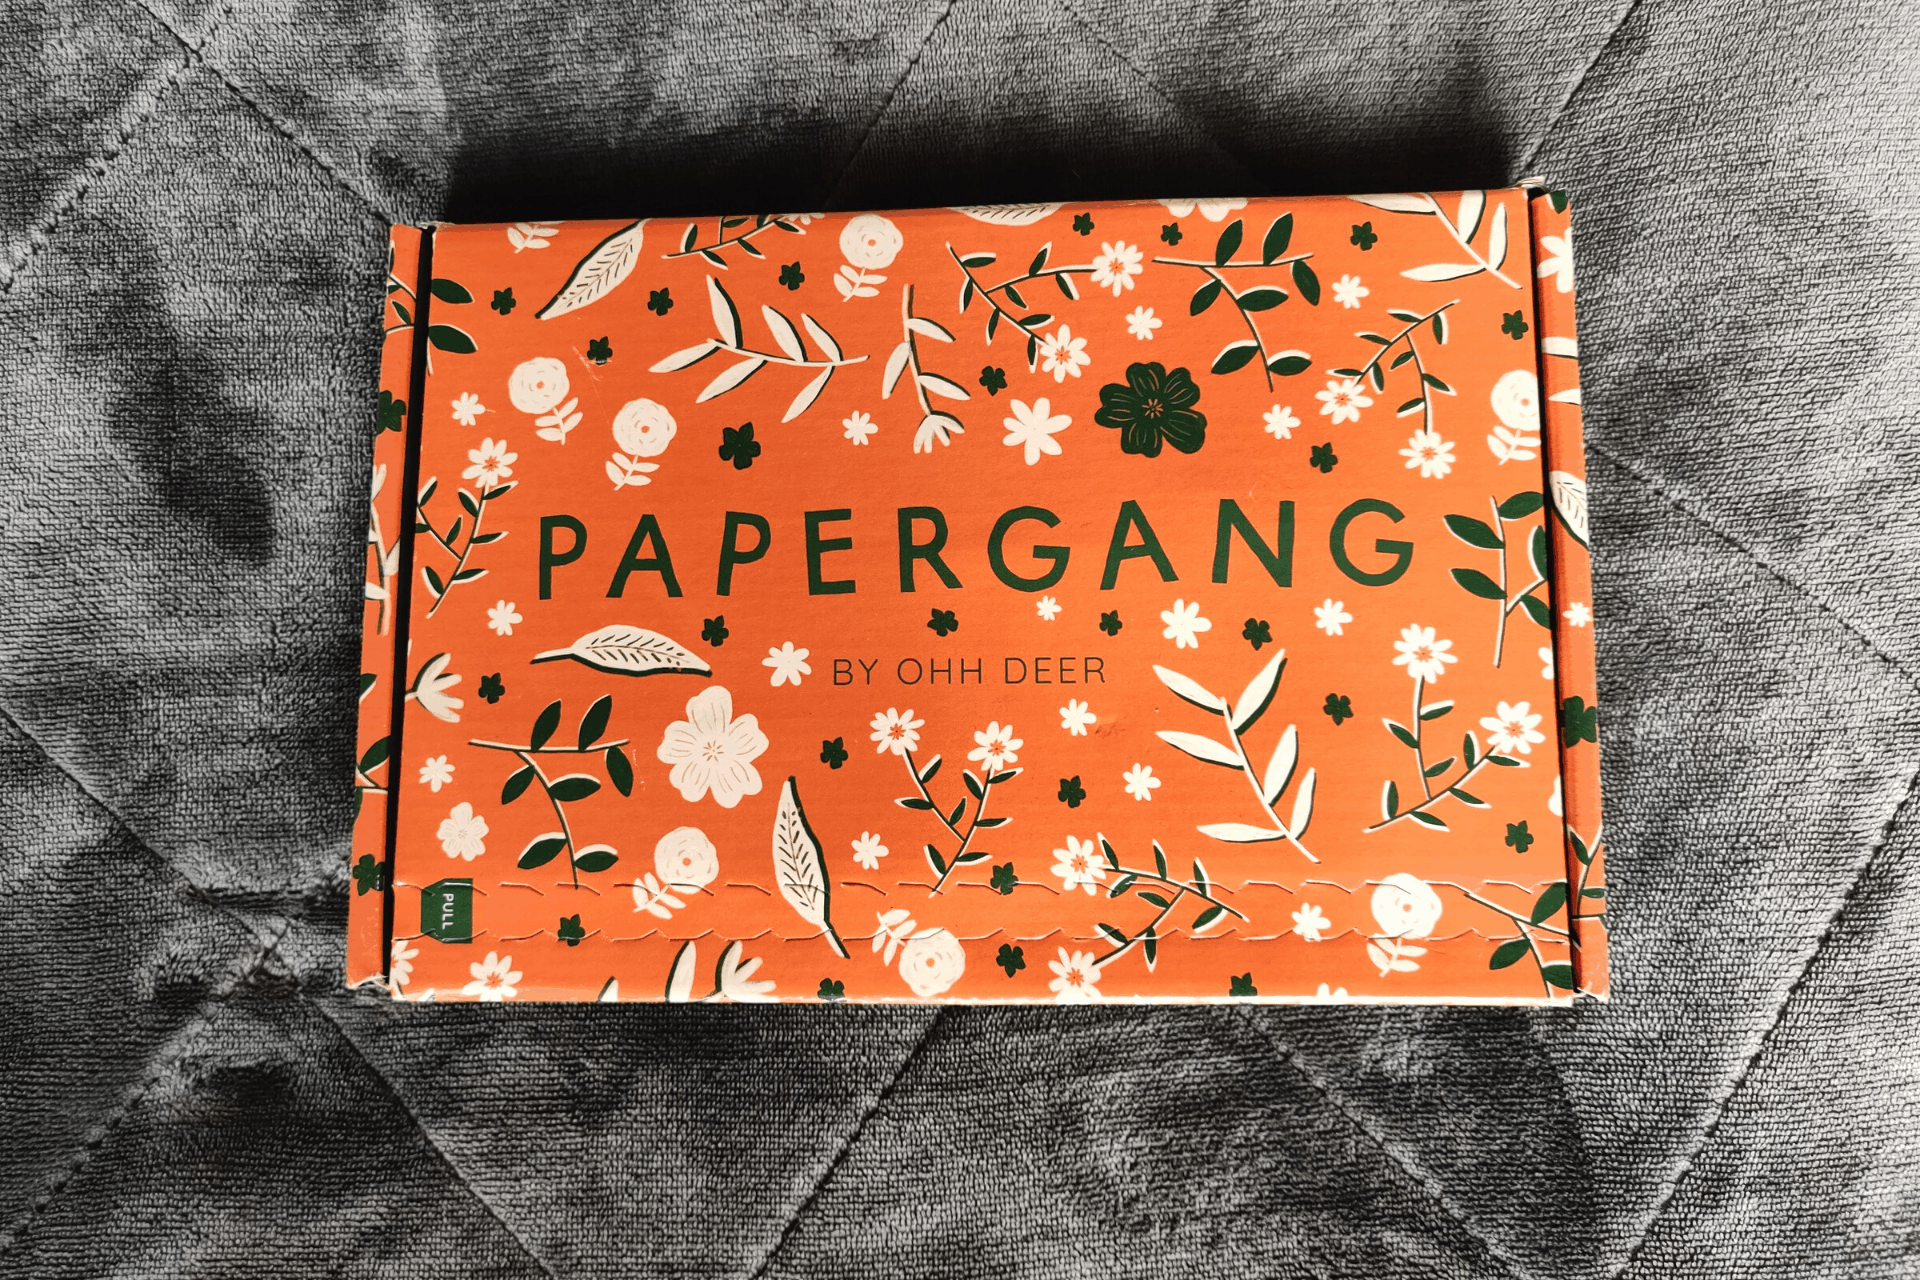 Papergang by Ohh Deer Stationery Box April 2020